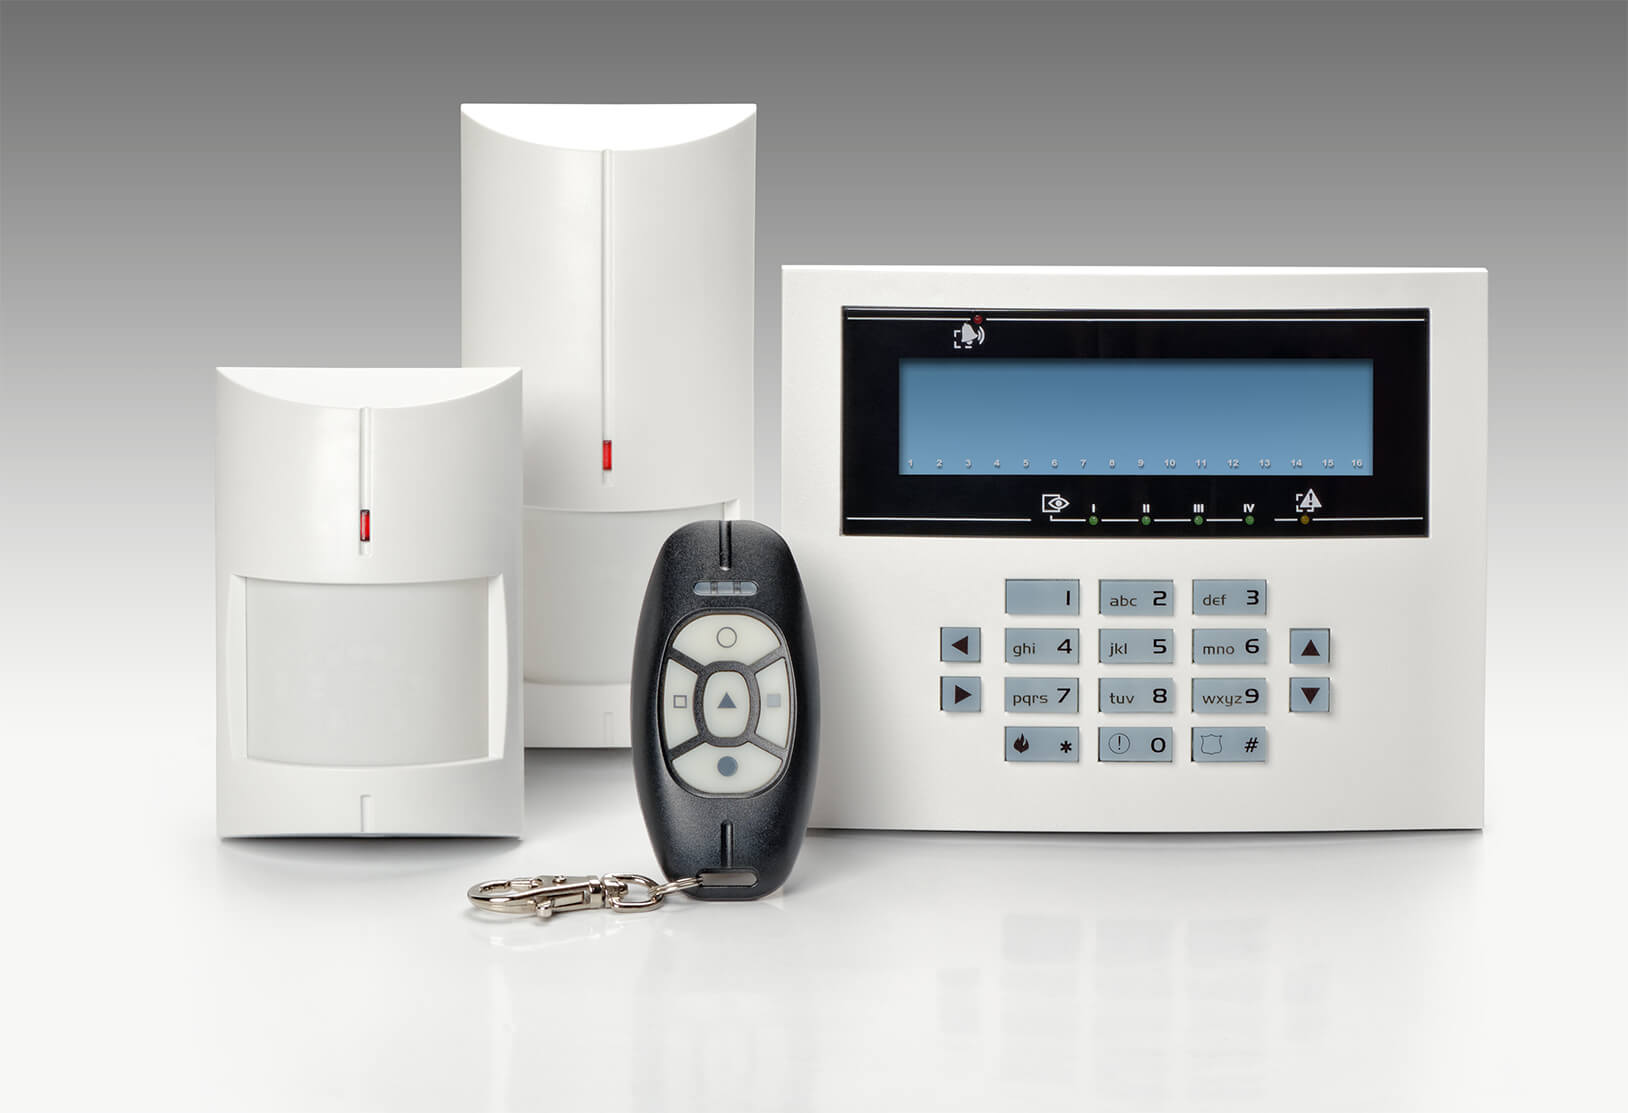 Commercial Burglar Alarms For Business in Chislehurst SE9  - Local Chislehurst SE9 burglar alarm company.Call 02078872244 - Dedicated to Safety & Security. Companies, shops and homes ..